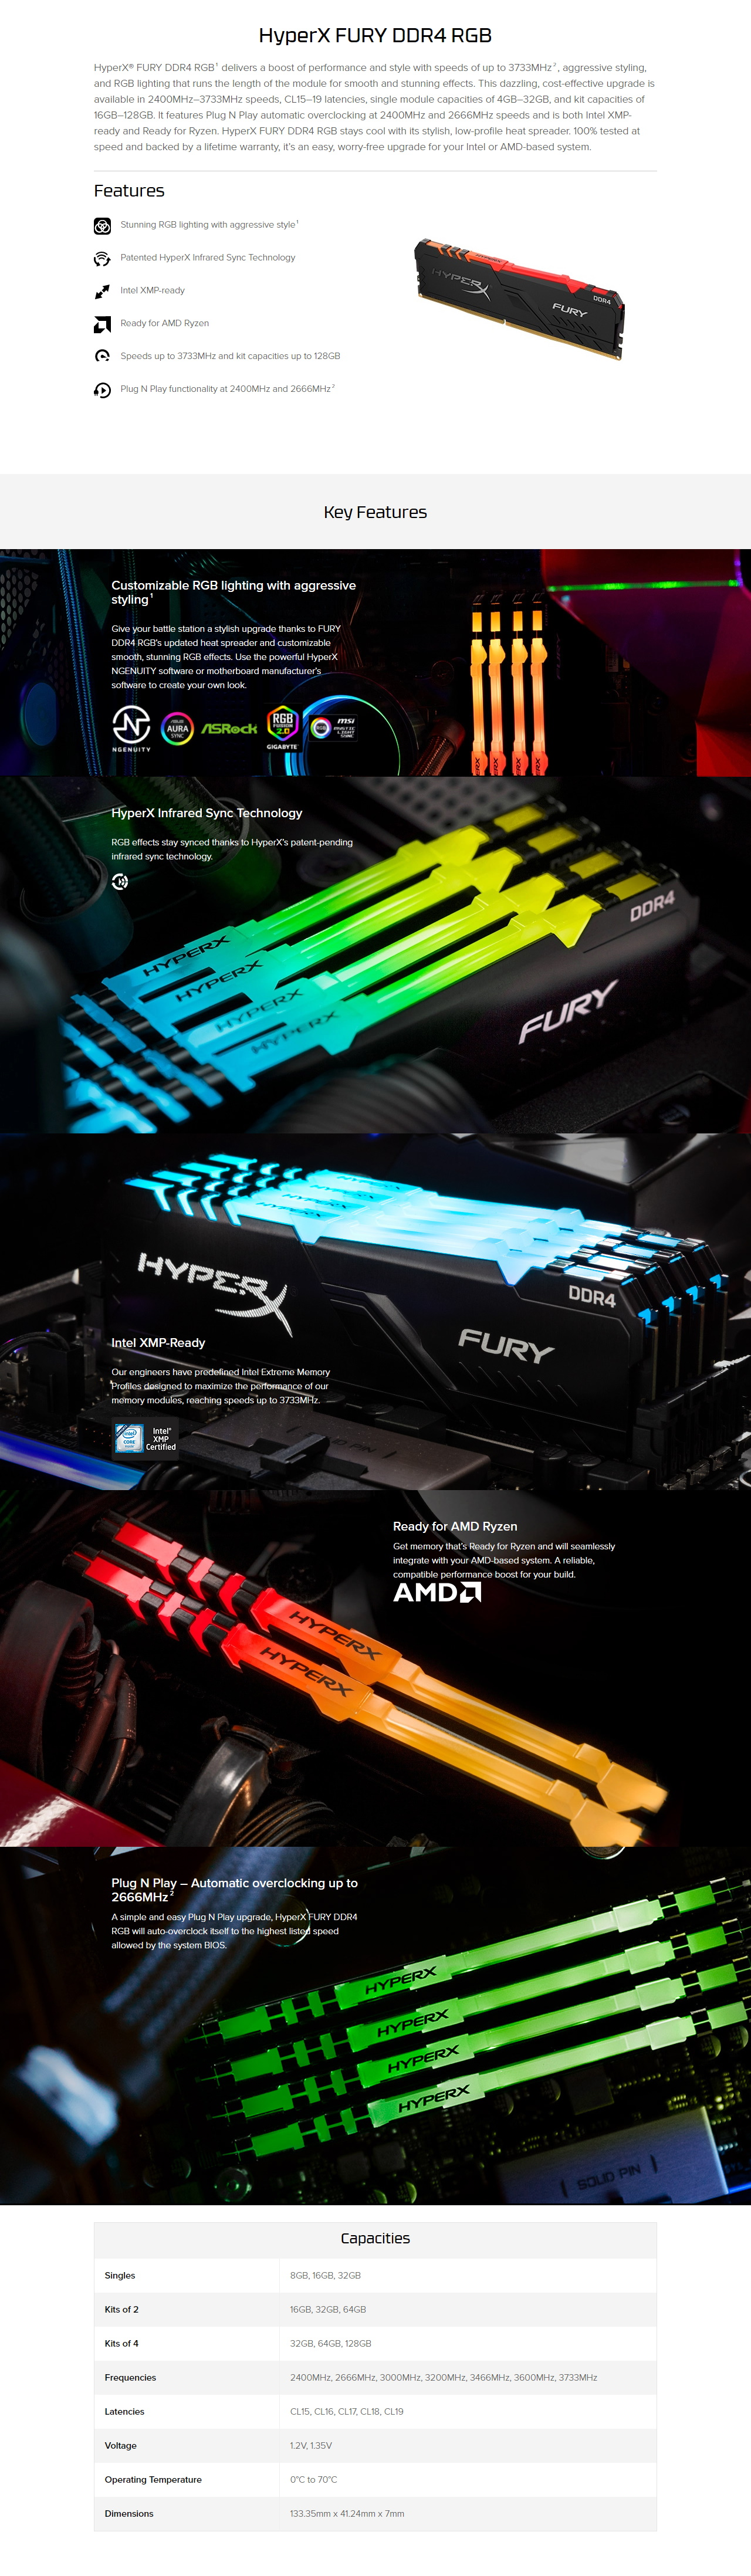 A large marketing image providing additional information about the product Kingston 32GB Kit (2x16GB) DDR4 HyperX Fury RGB C16 2666MHz - Additional alt info not provided